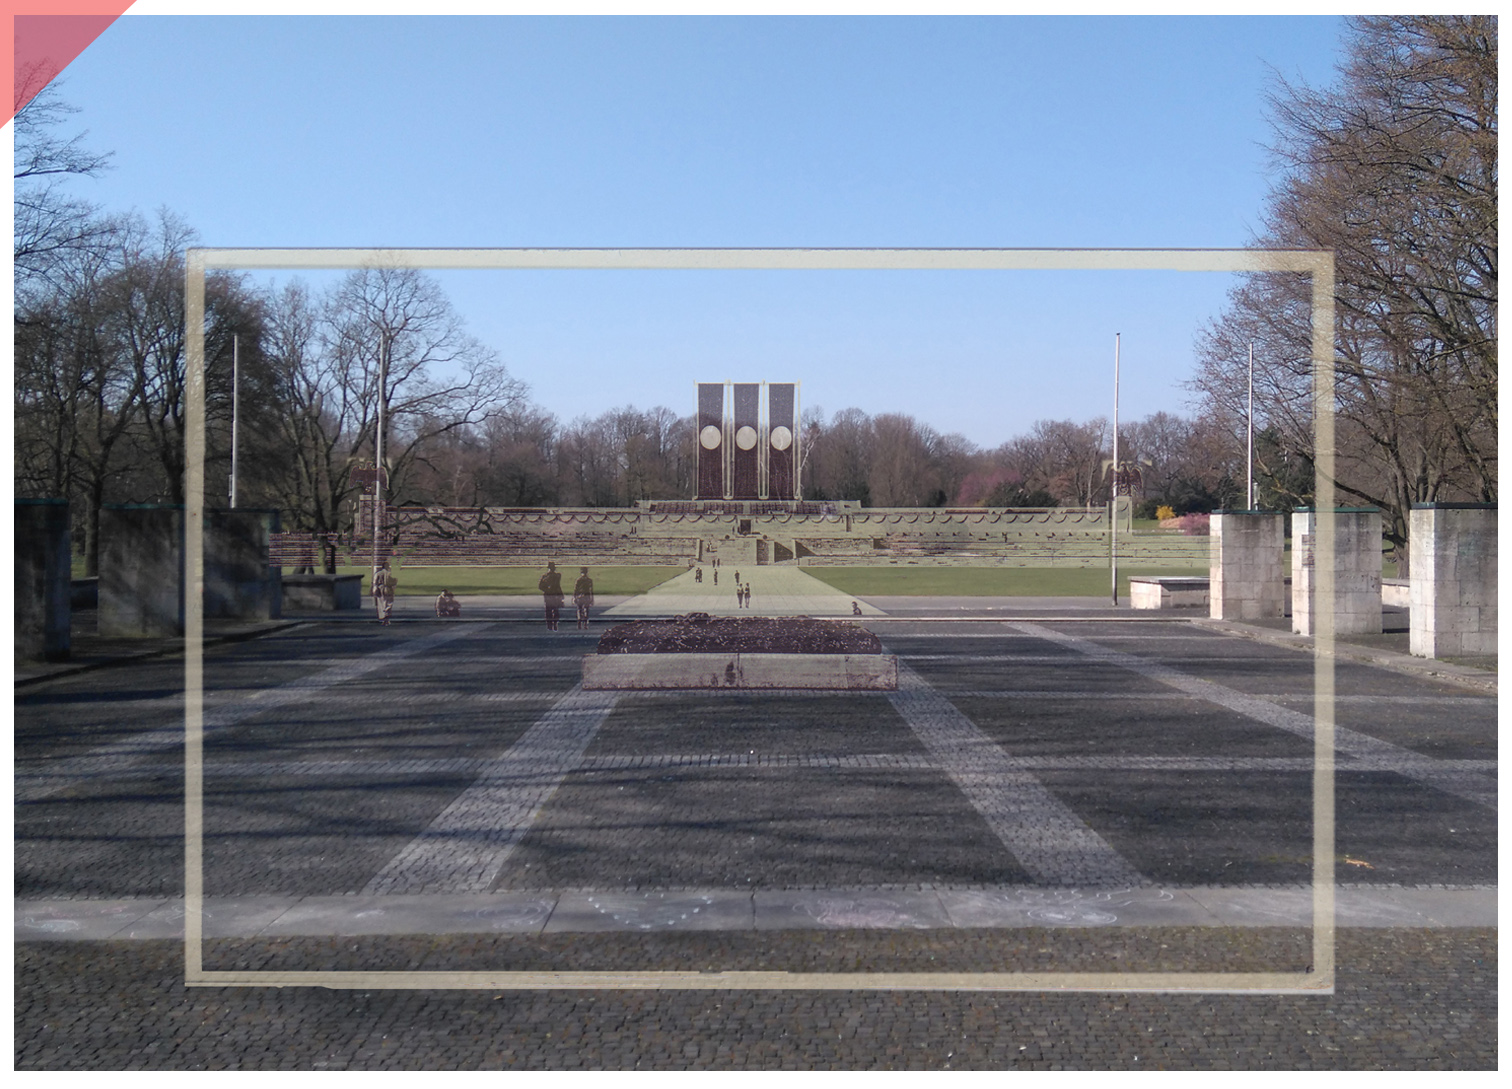 Luitpold-arena-Nuremberg-Nazi-Party-Rally-Grounds-Hall-of-honor-Then-Now